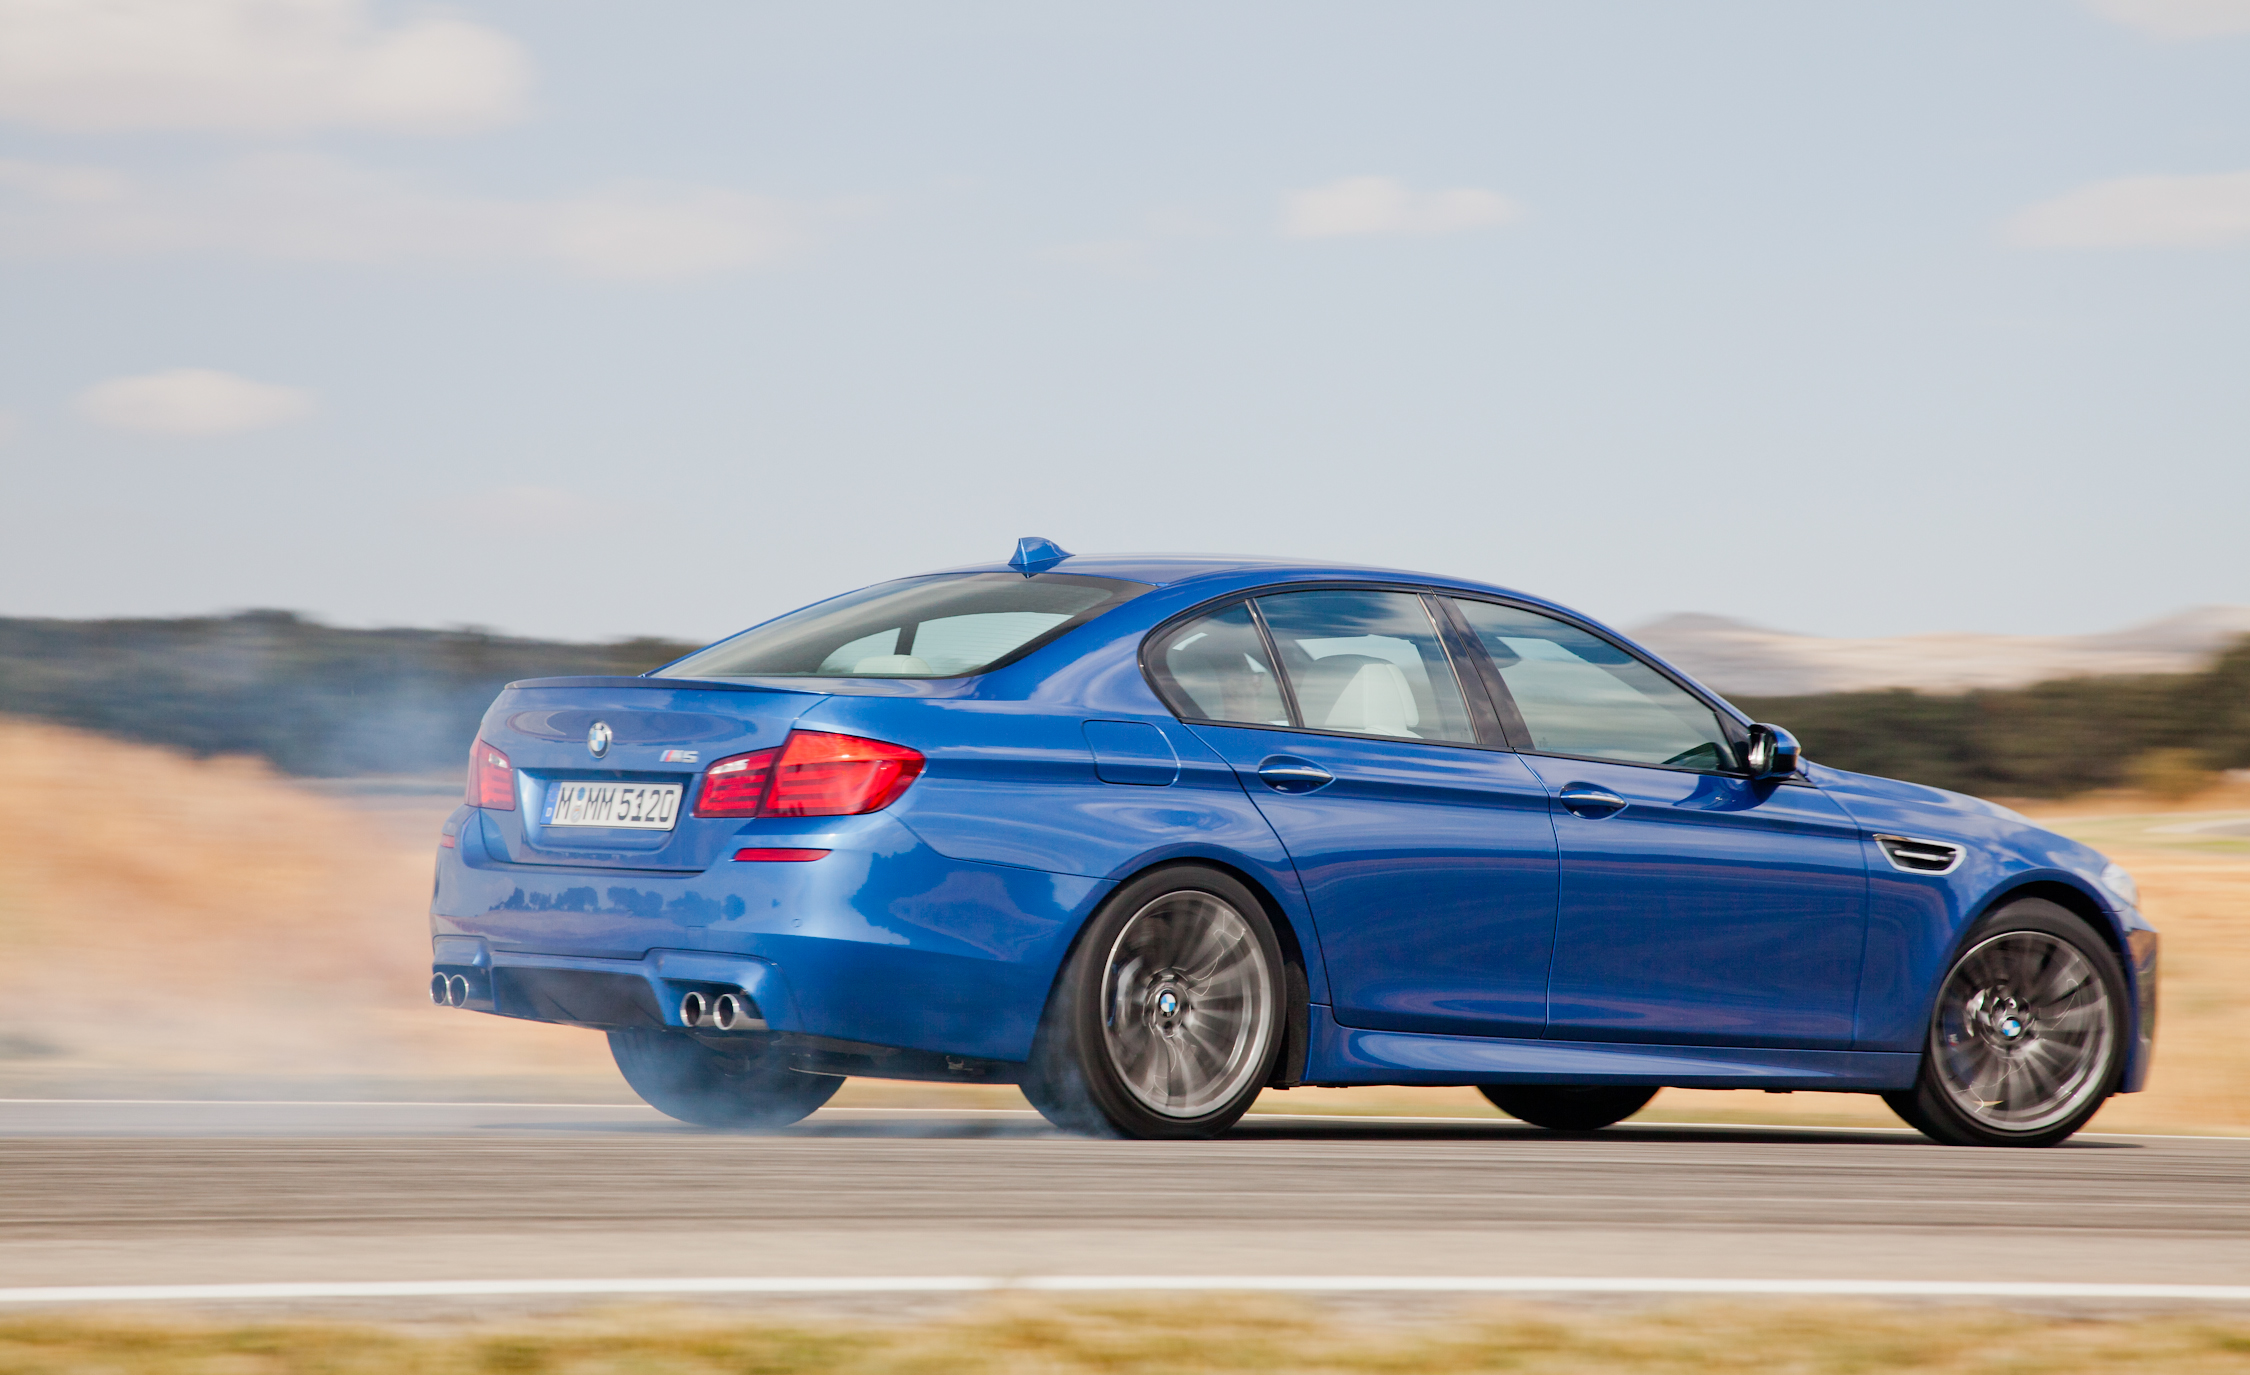 2013 BMW M5 Test Drive Side And Rear View (View 19 of 22)